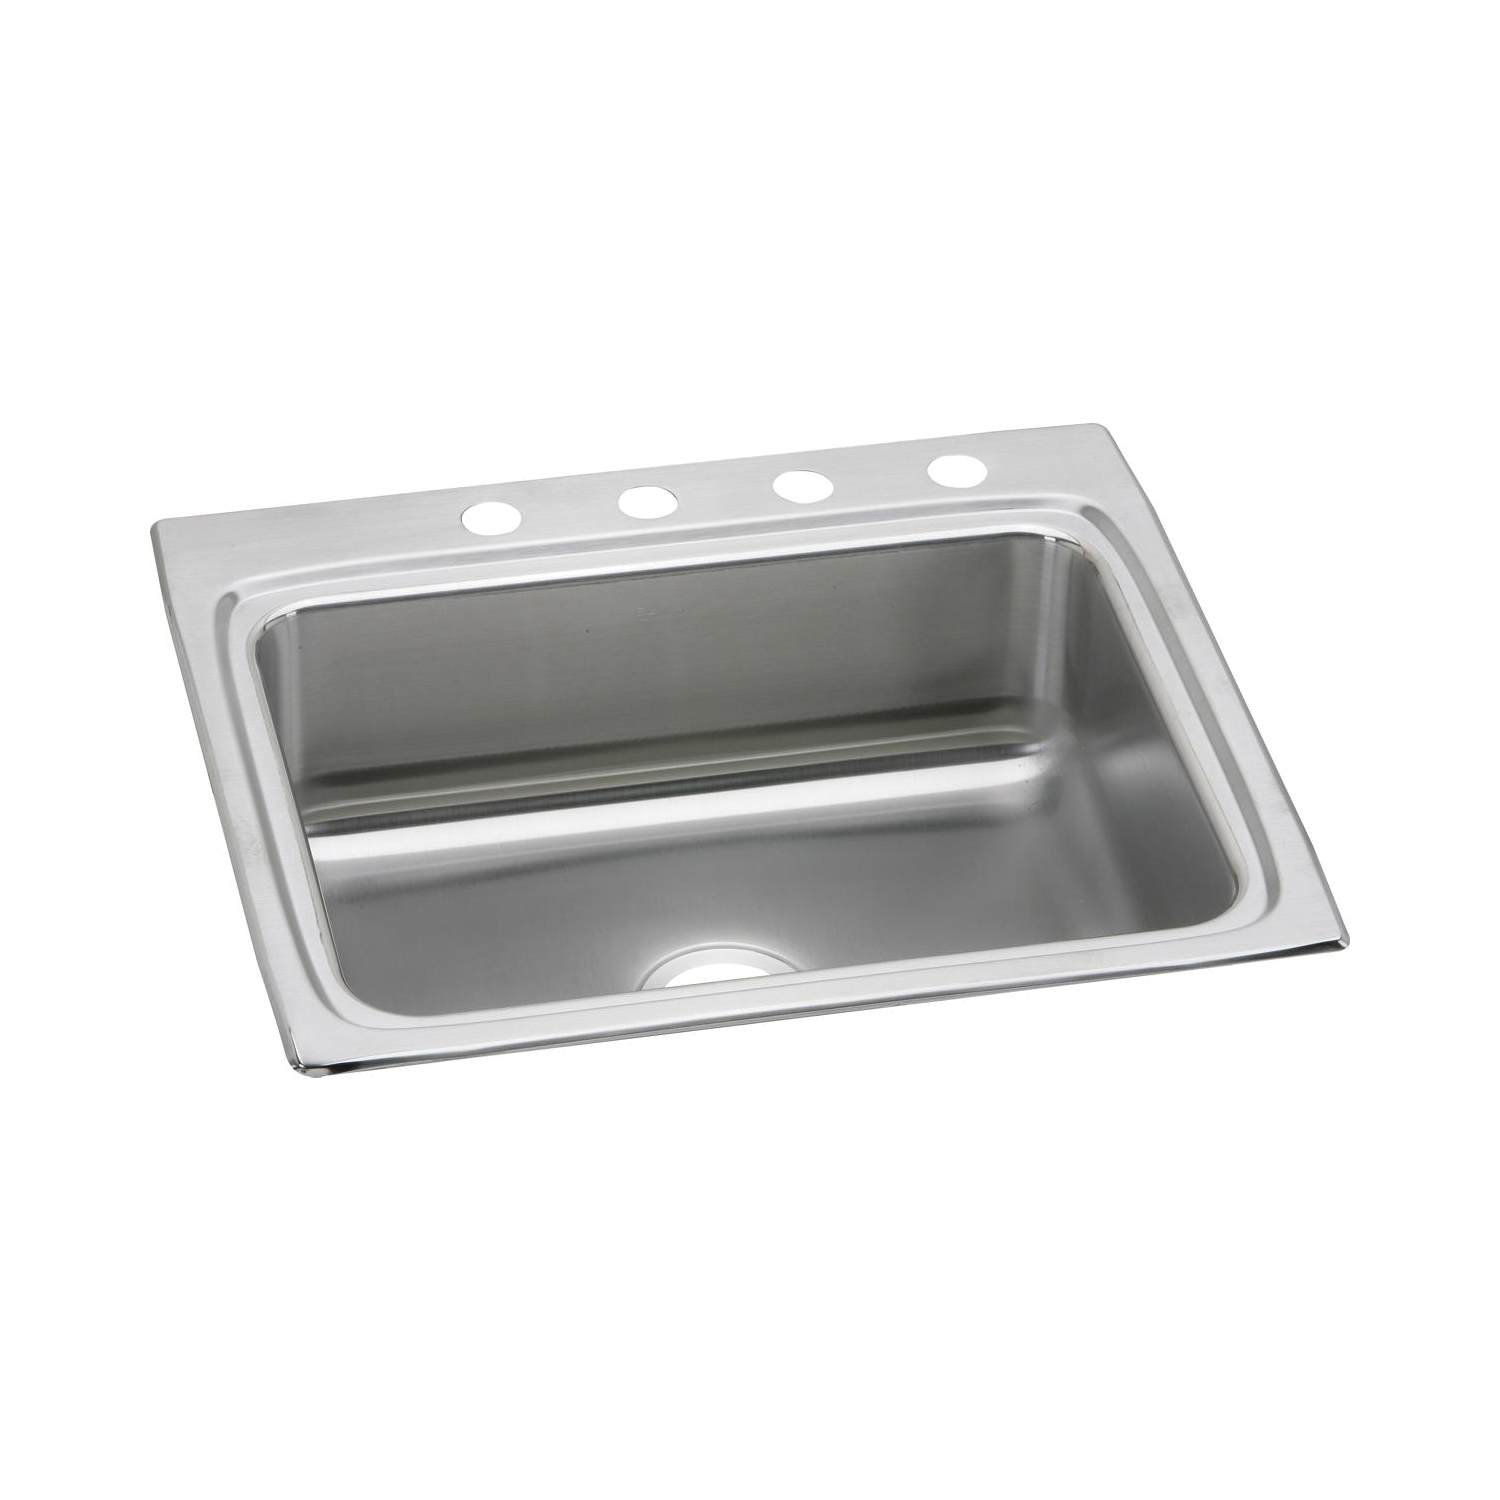 Elkay® LR25224 Gourmet Kitchen Sink, Rectangular, 4 Faucet Holes, 25 in W x 22 in D x 8-1/8 in H, Top Mount, Stainless Steel, Lustertone, Domestic